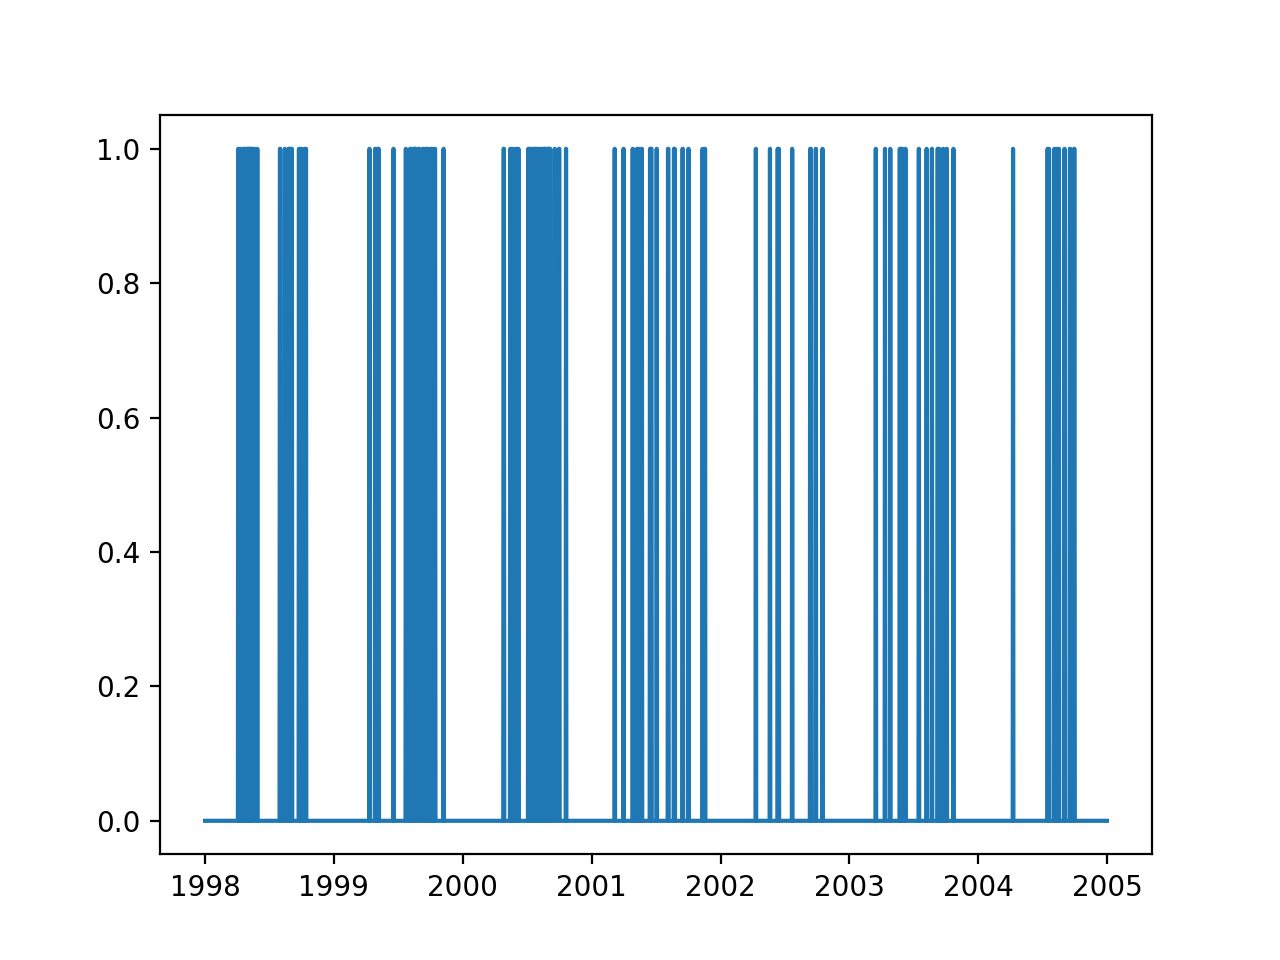 Line plot of output variable over 7 years